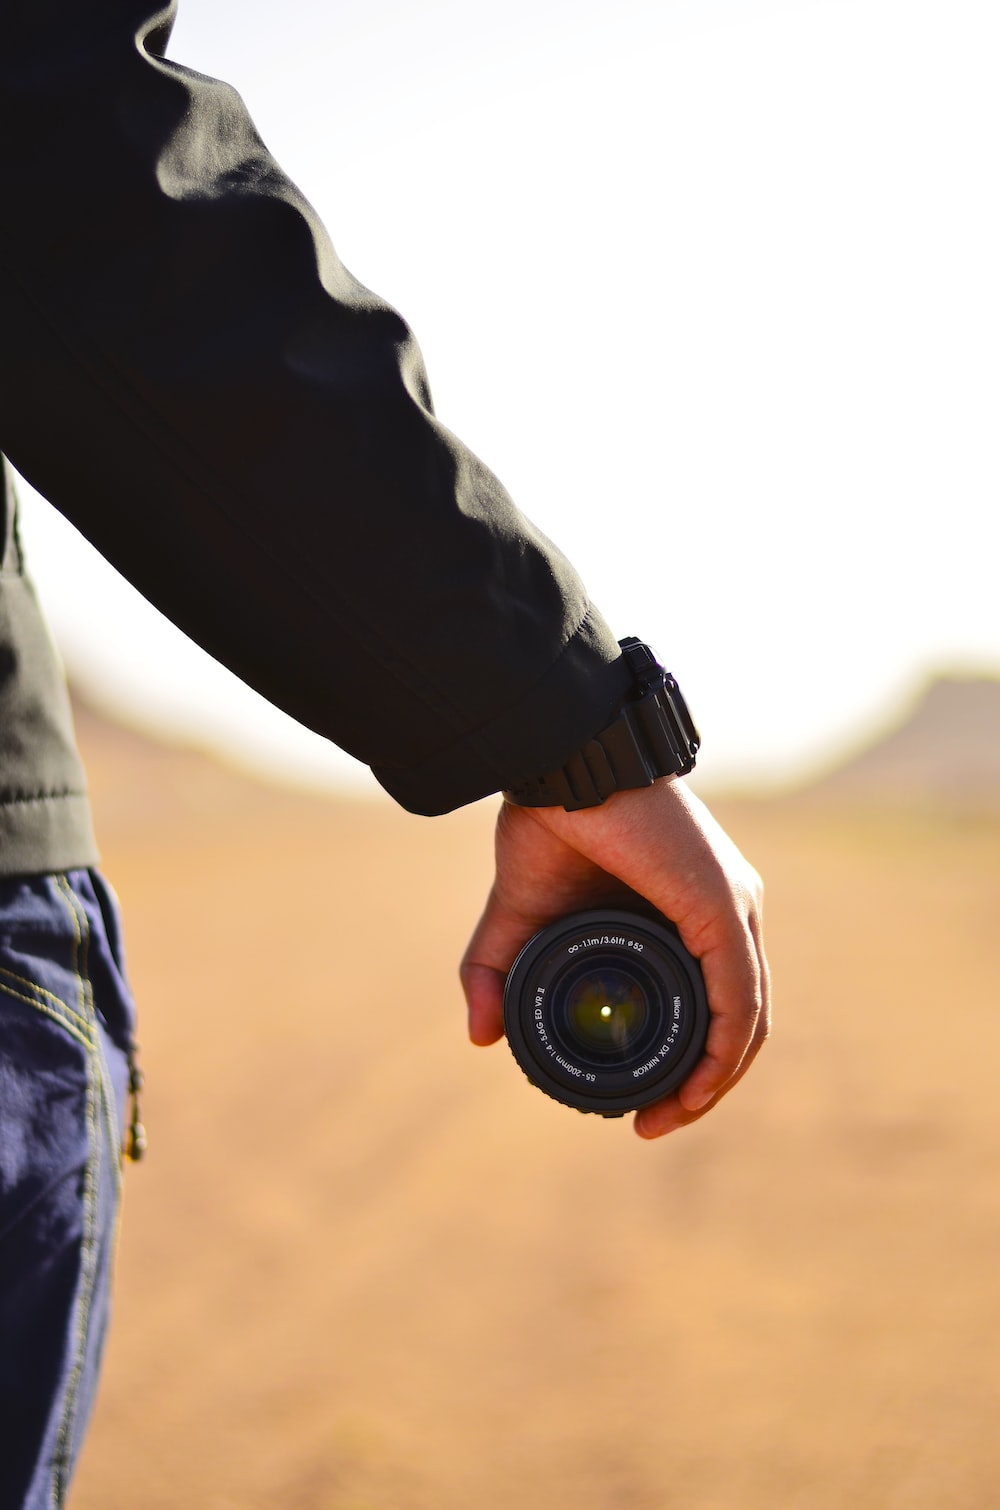 person holding DLSR camera lens